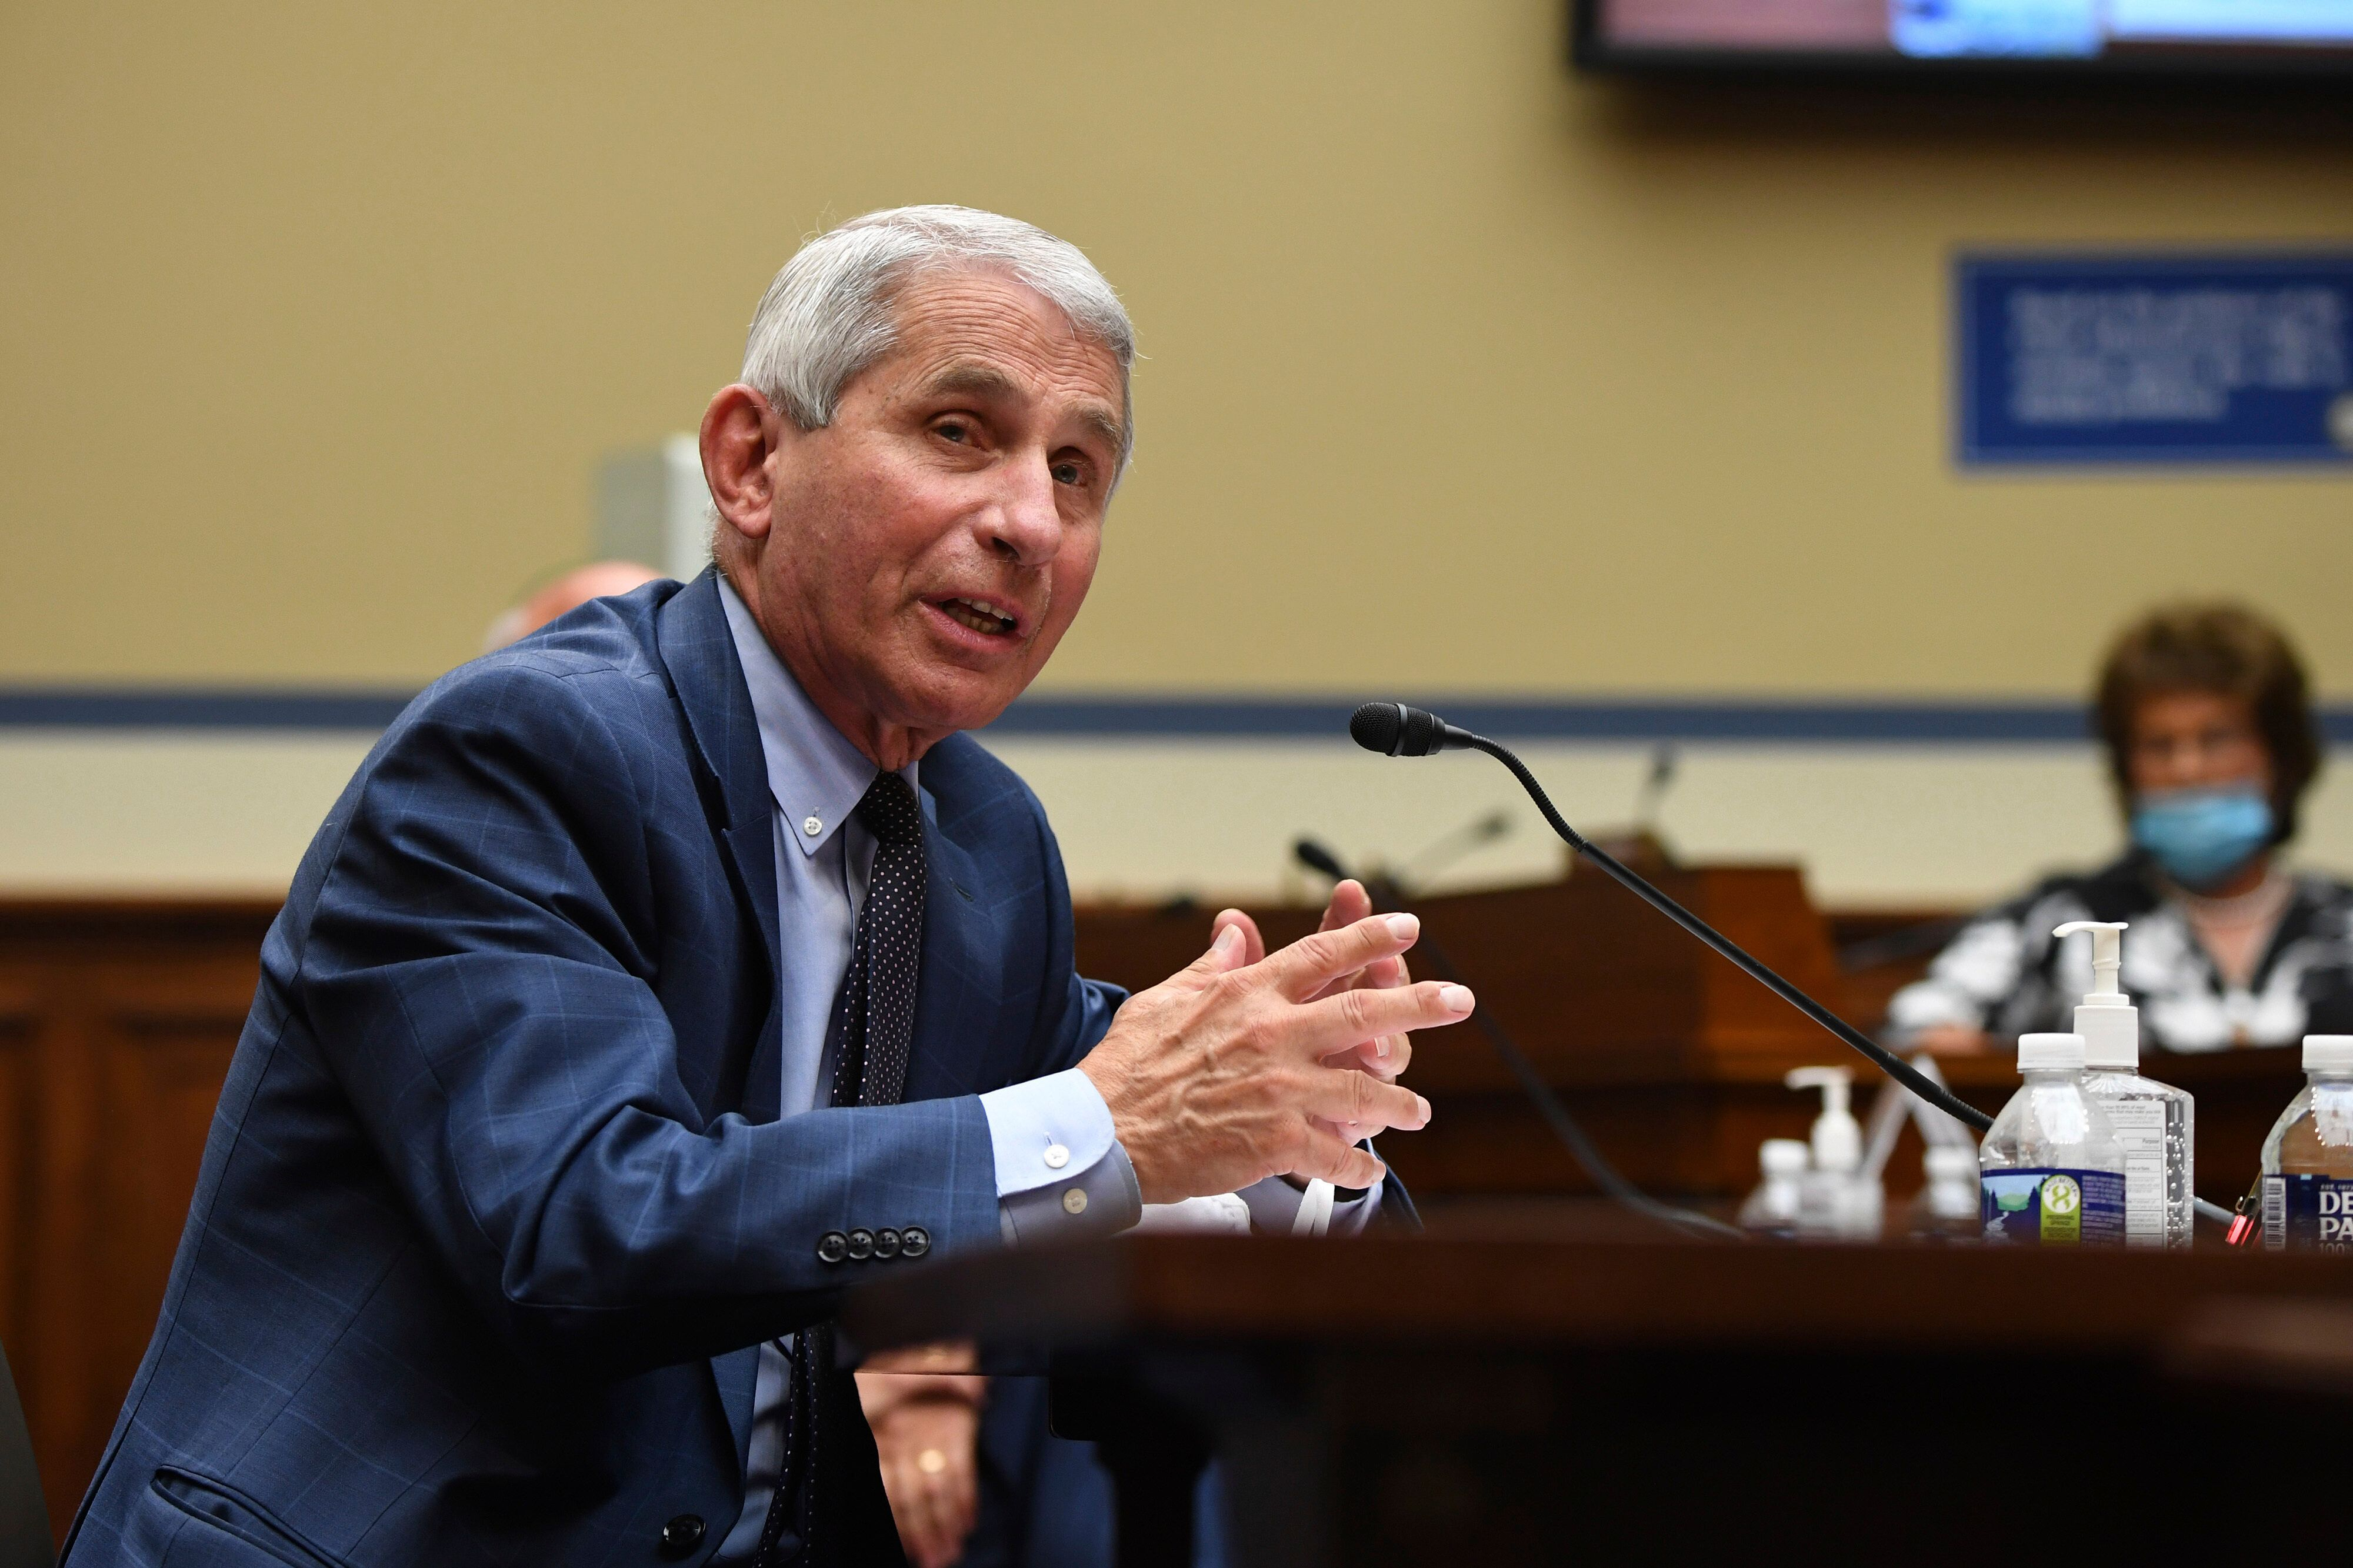 Dr. Anthony Fauci, seen in July, saidthat AstraZeneca's decision to pause global trials of its experimental coron